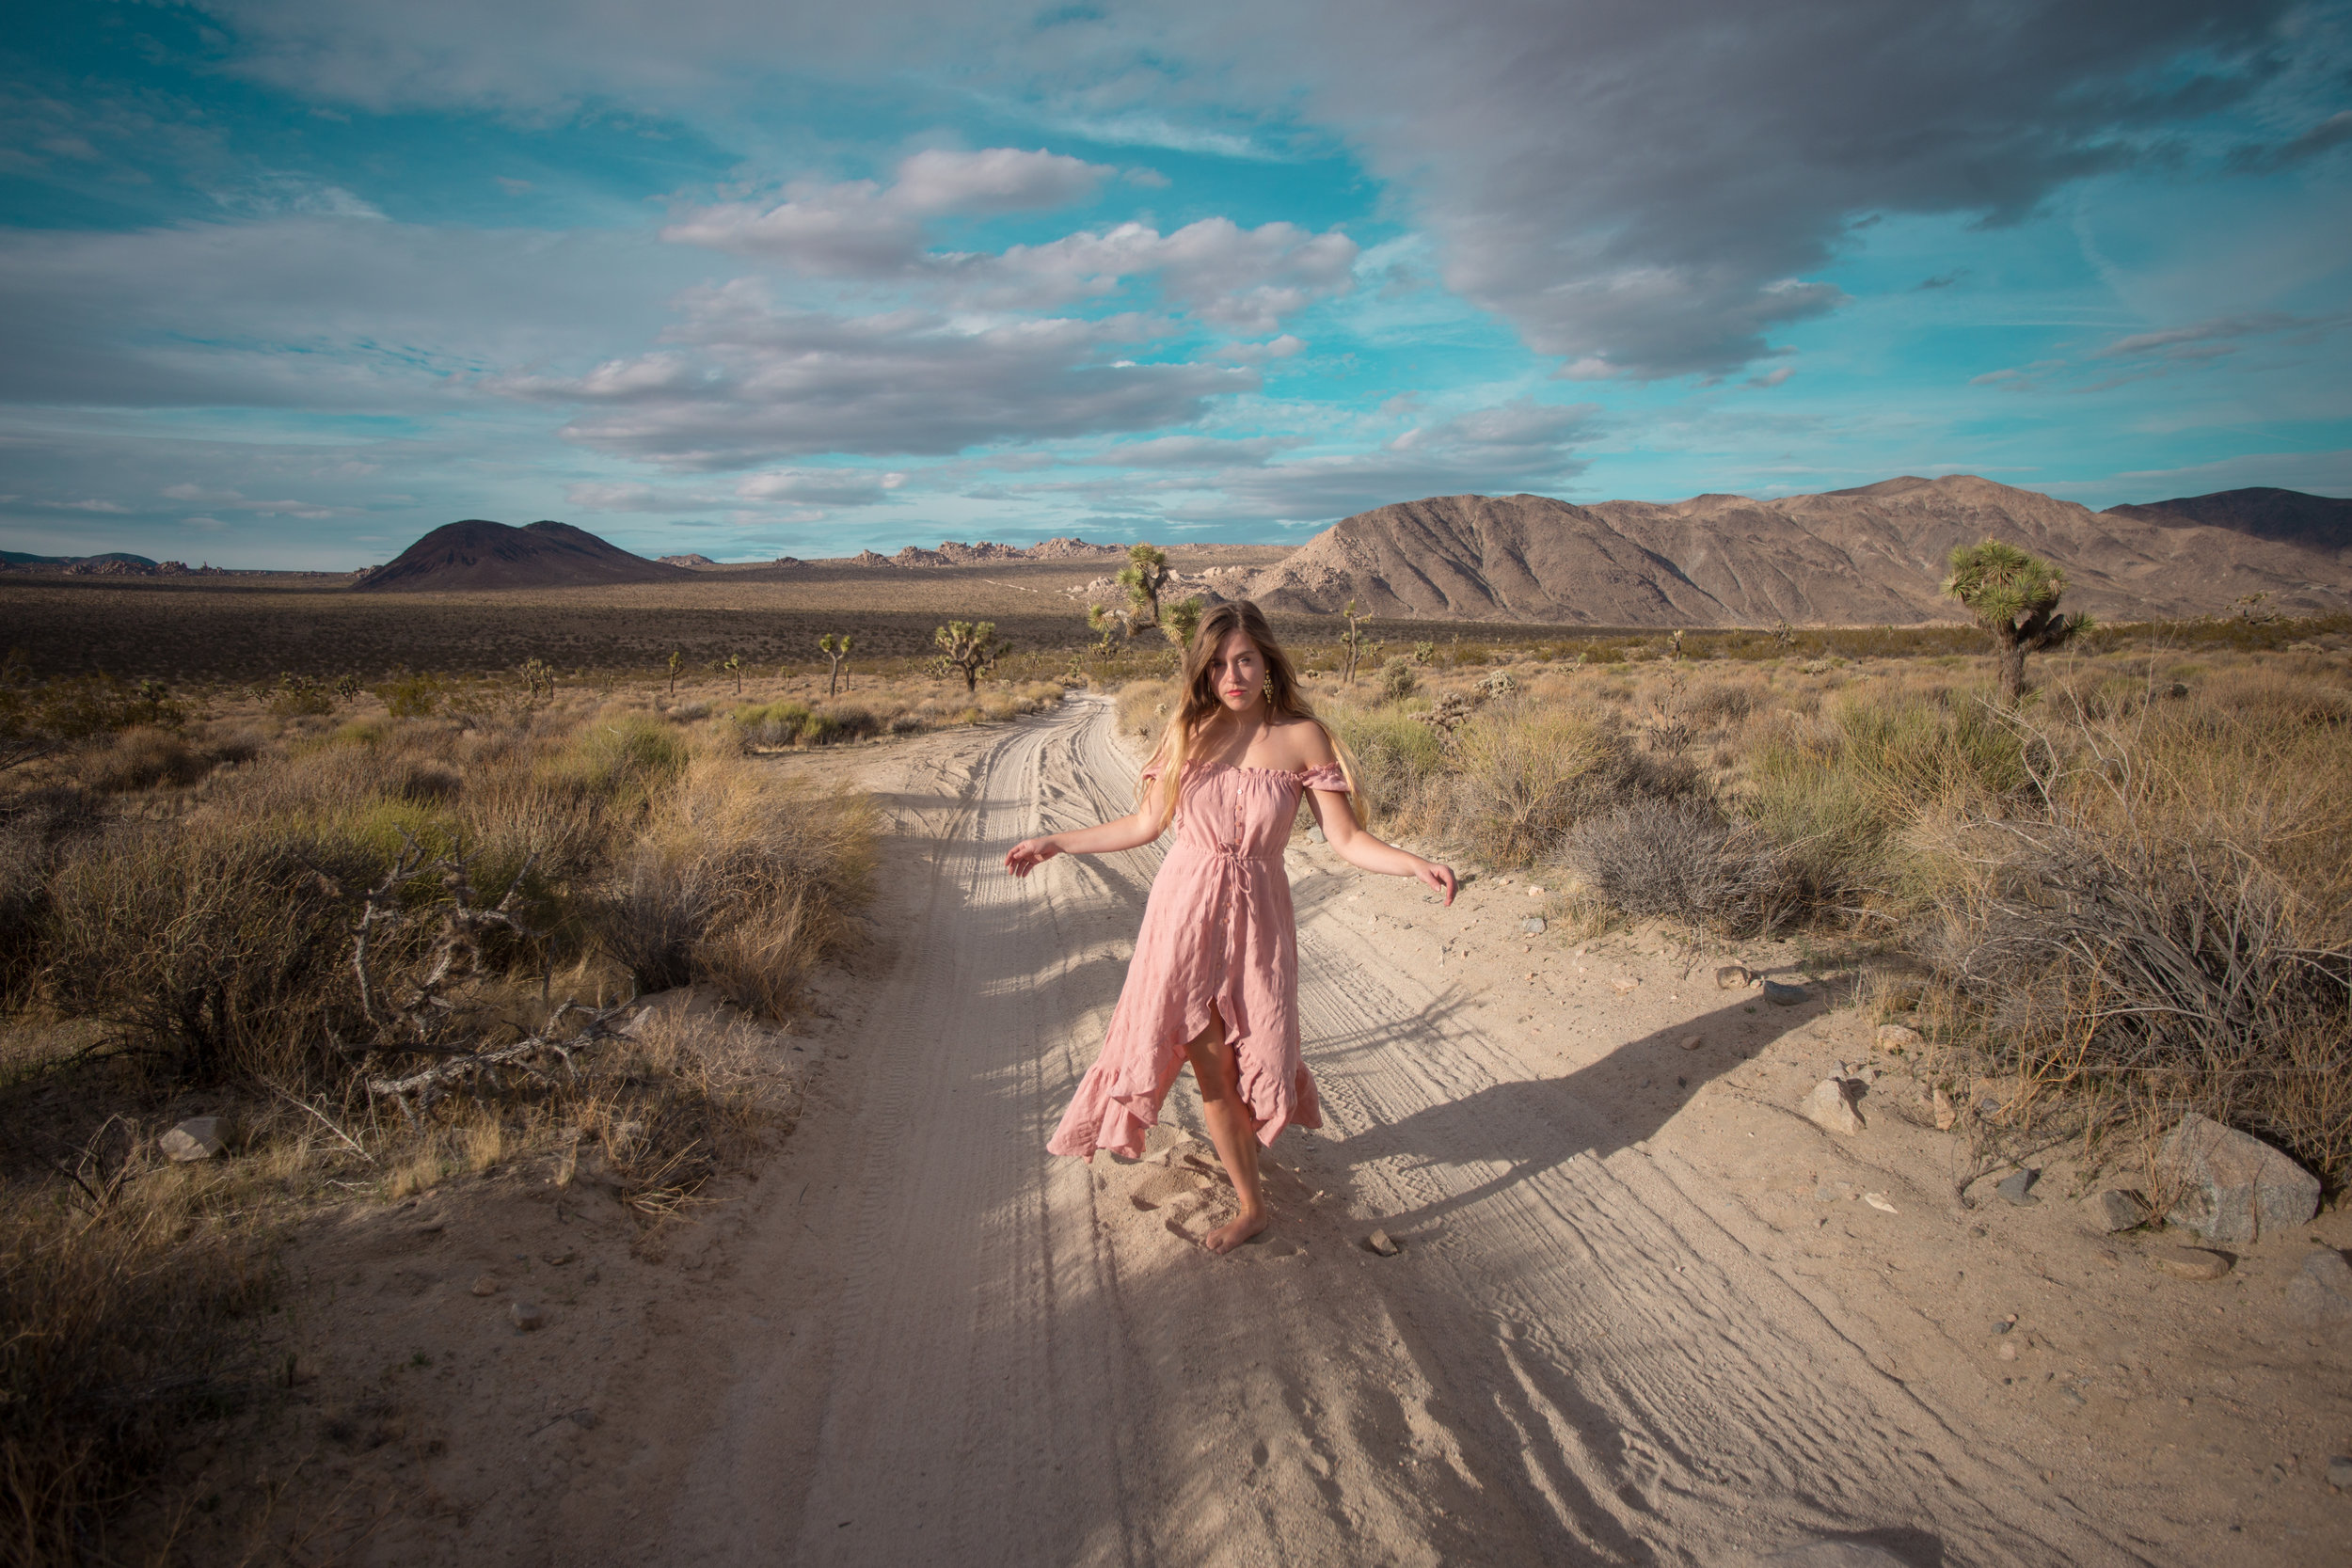 AstroBandit_JordanRose_Auguste_The_Label_LightPink_Spring_2018_Fashion_Maxi_Dress_Joshua_Tree_Storm_2.jpg